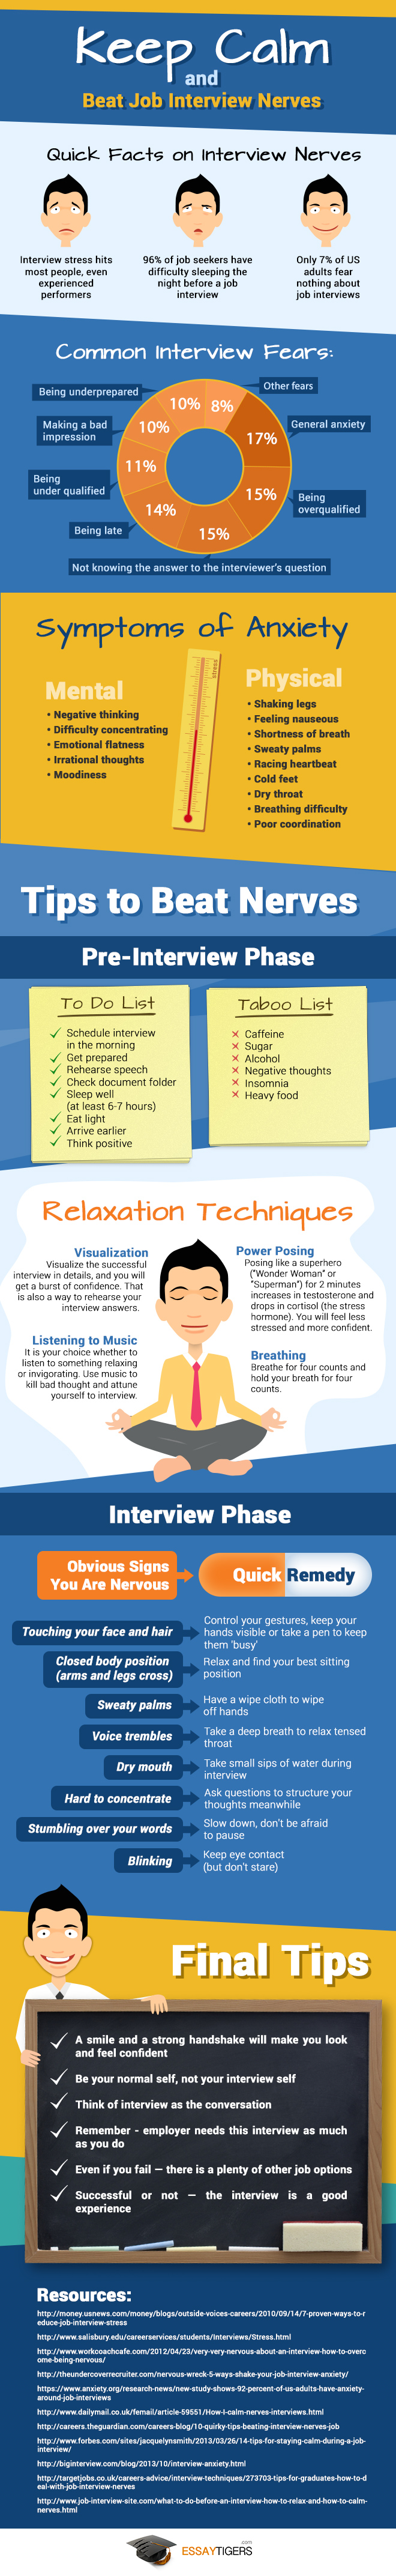 how to keep calm during a 10 tricks successful people use to stay calm in stressful situations  the internet is full of puzzles and games that can help keep your brain in tip-top shape and .